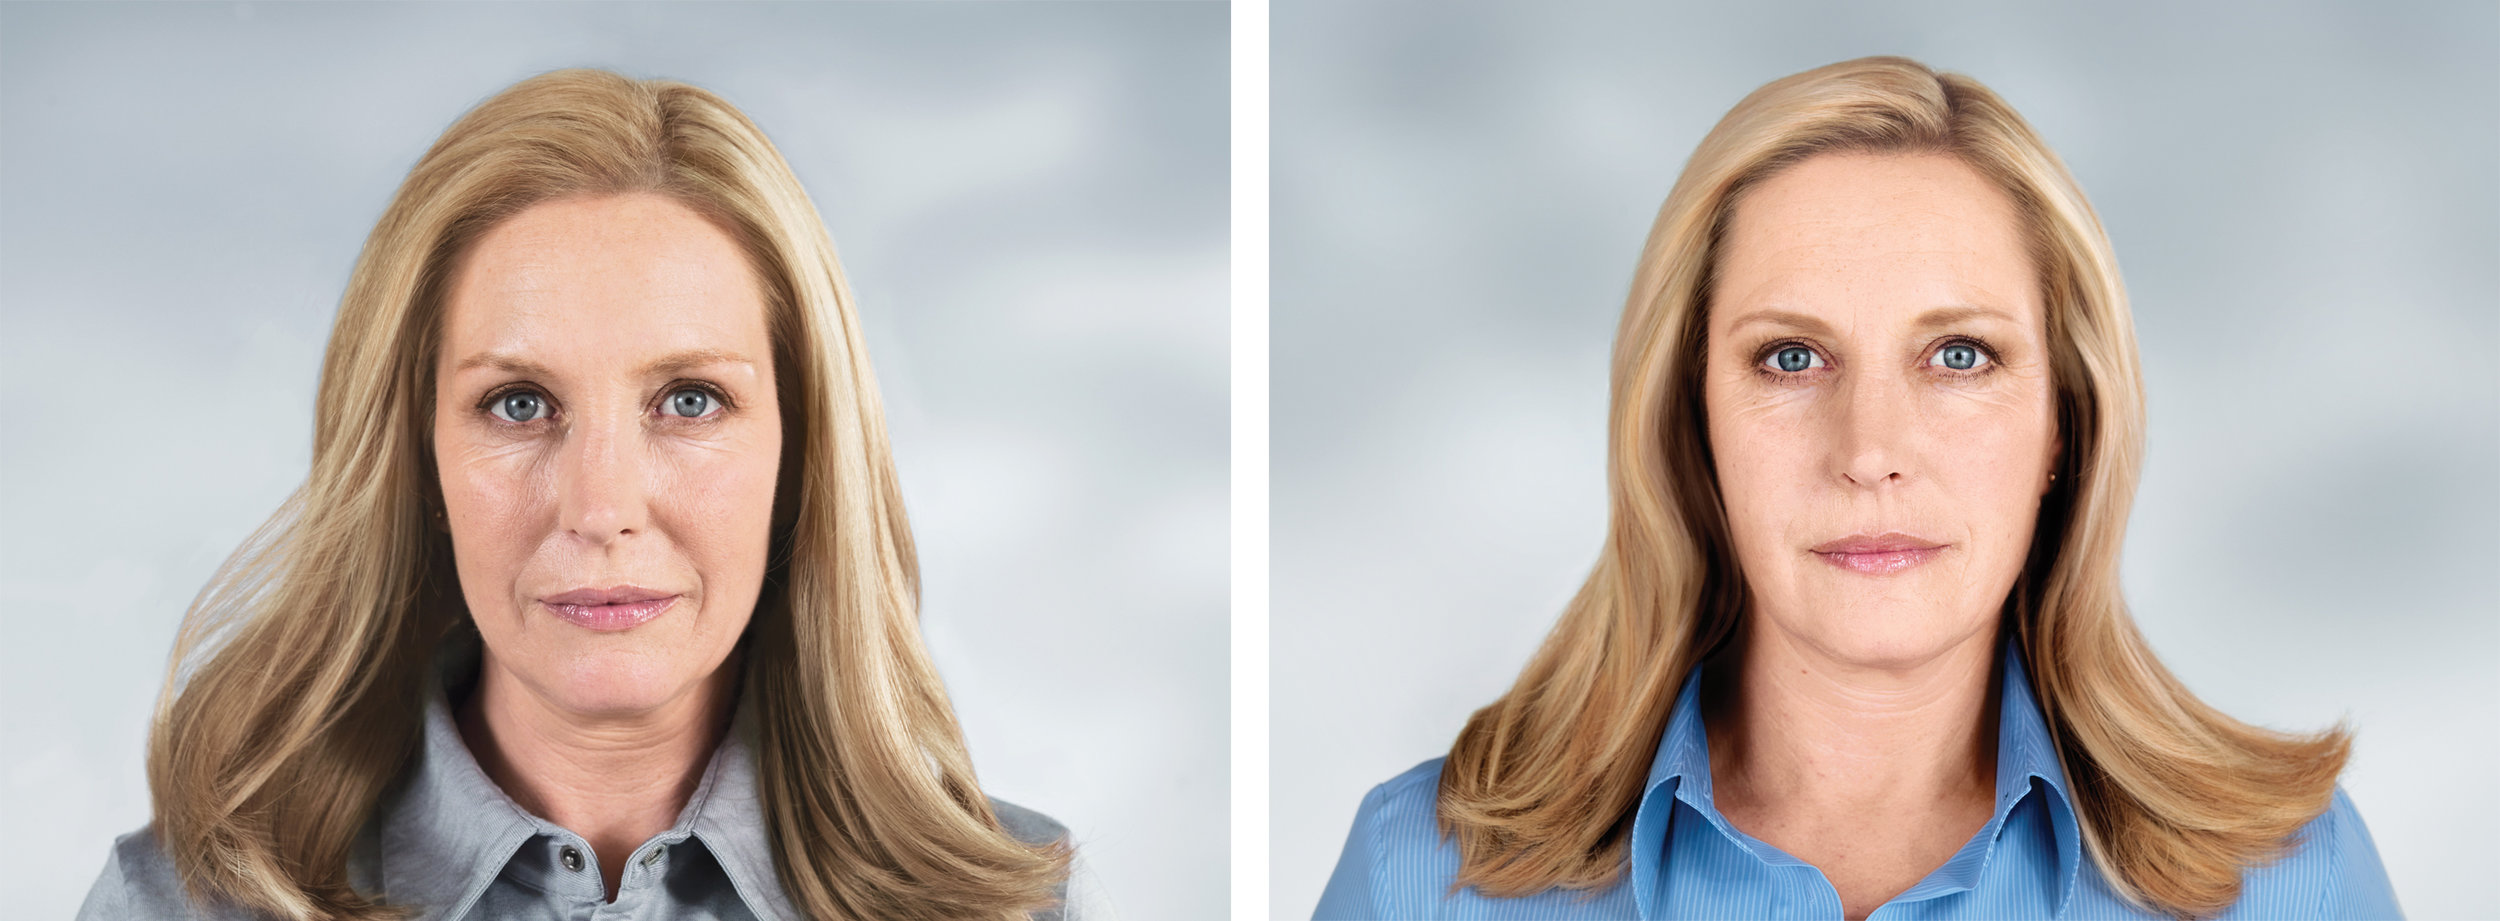 Before-and-after photo of a 49-year-old treated with Sculptra. Treatment included: 5 visits over 25 months.